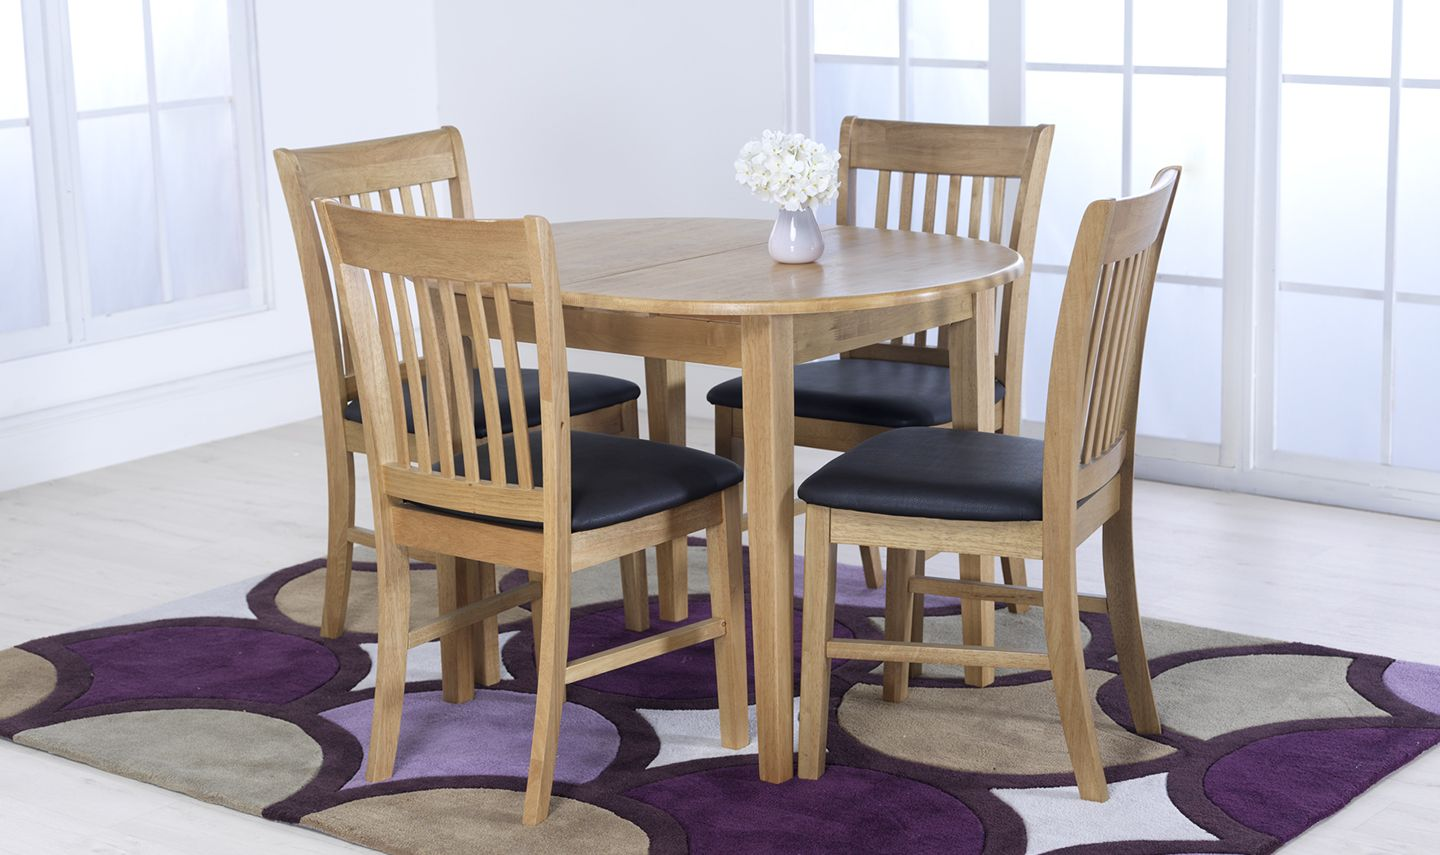 Admirable Nola Solid Hardwood Oak Finish Extending Dining Table 18Vd279 Bralicious Painted Fabric Chair Ideas Braliciousco